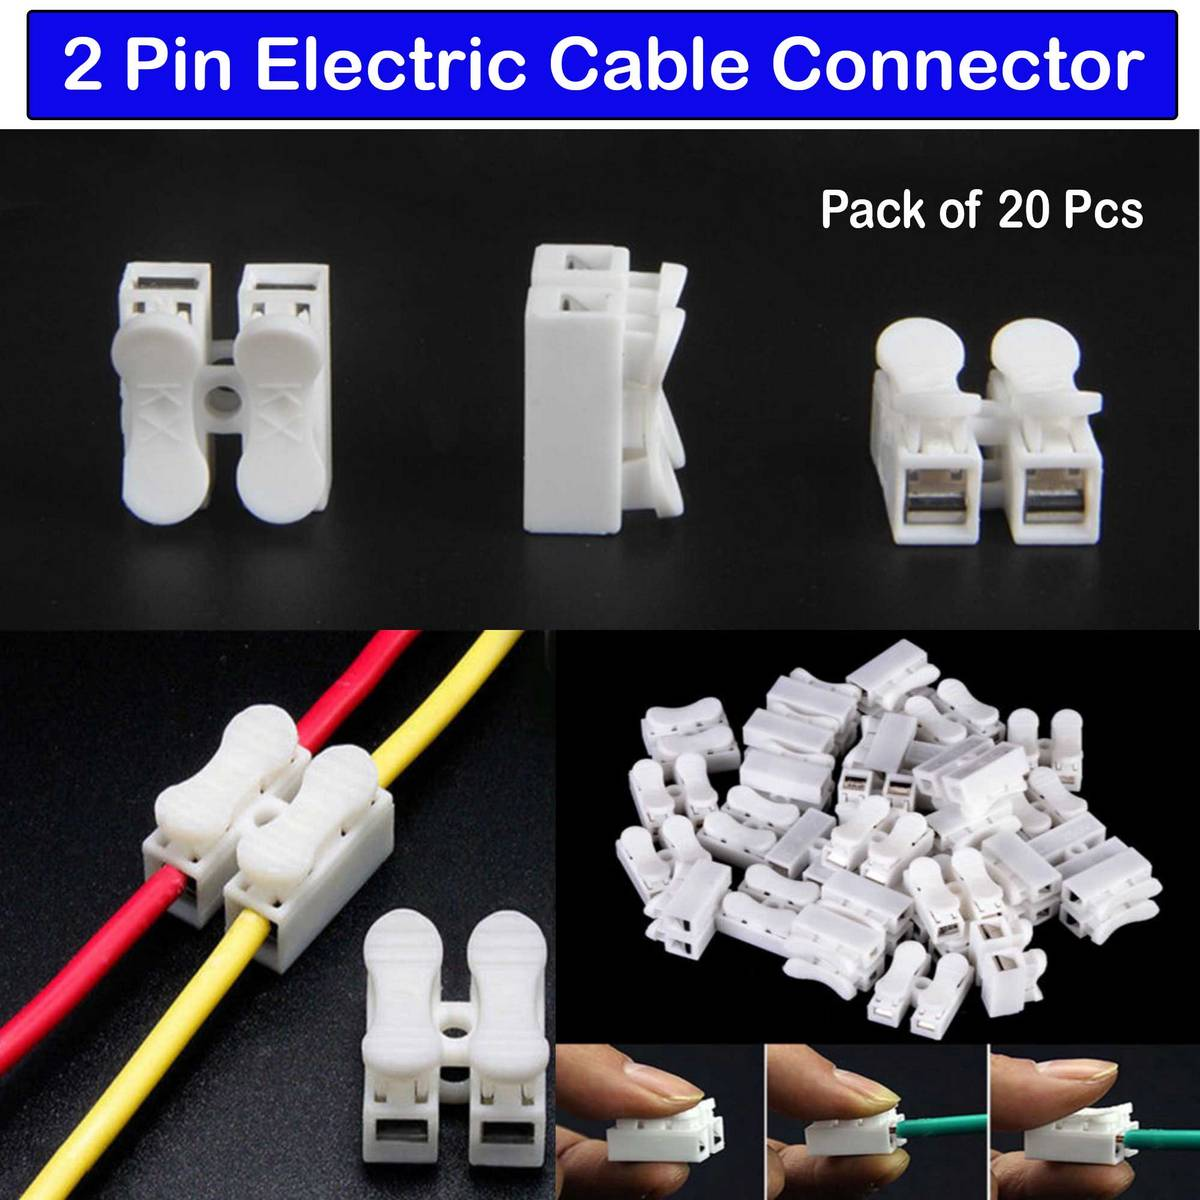 2 Point Screw Less Push Quick Electric Wire Cable Connector 10A 380V Terminal Wiring Splice Lock Wire Terminal for ceiling LED Lights